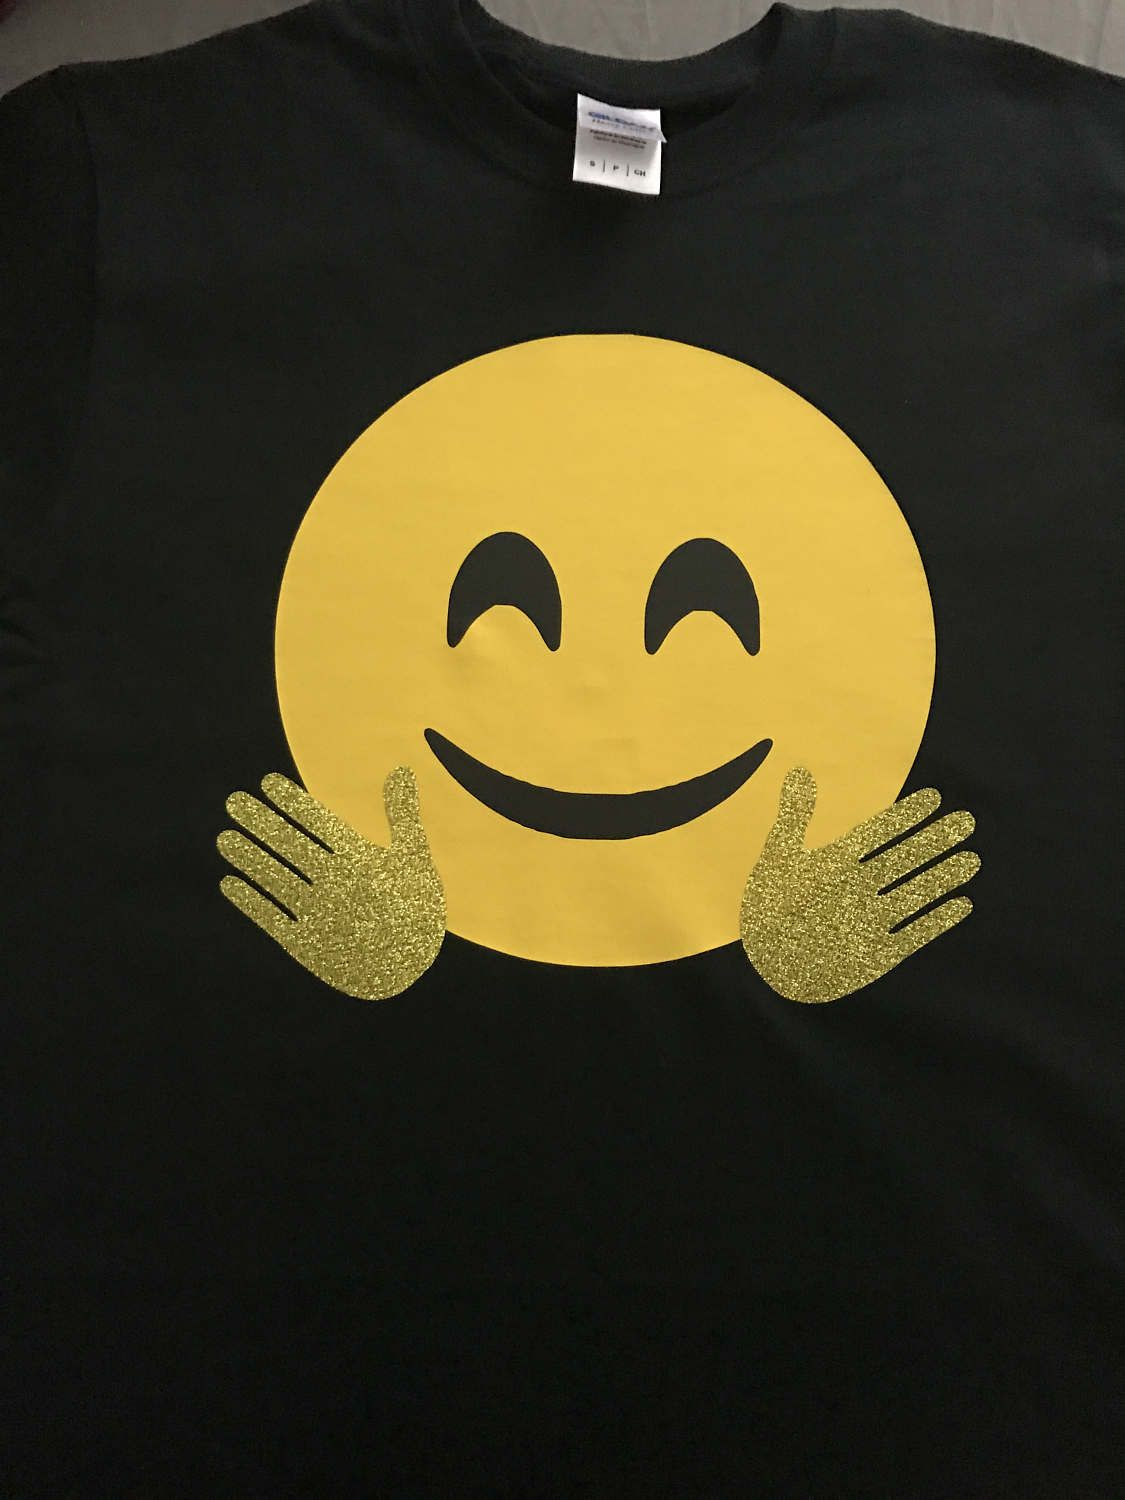 Black t shirt with gold design - Women S Black T Shirt Emoji Design Smiley Face And Gold Glitter Hands